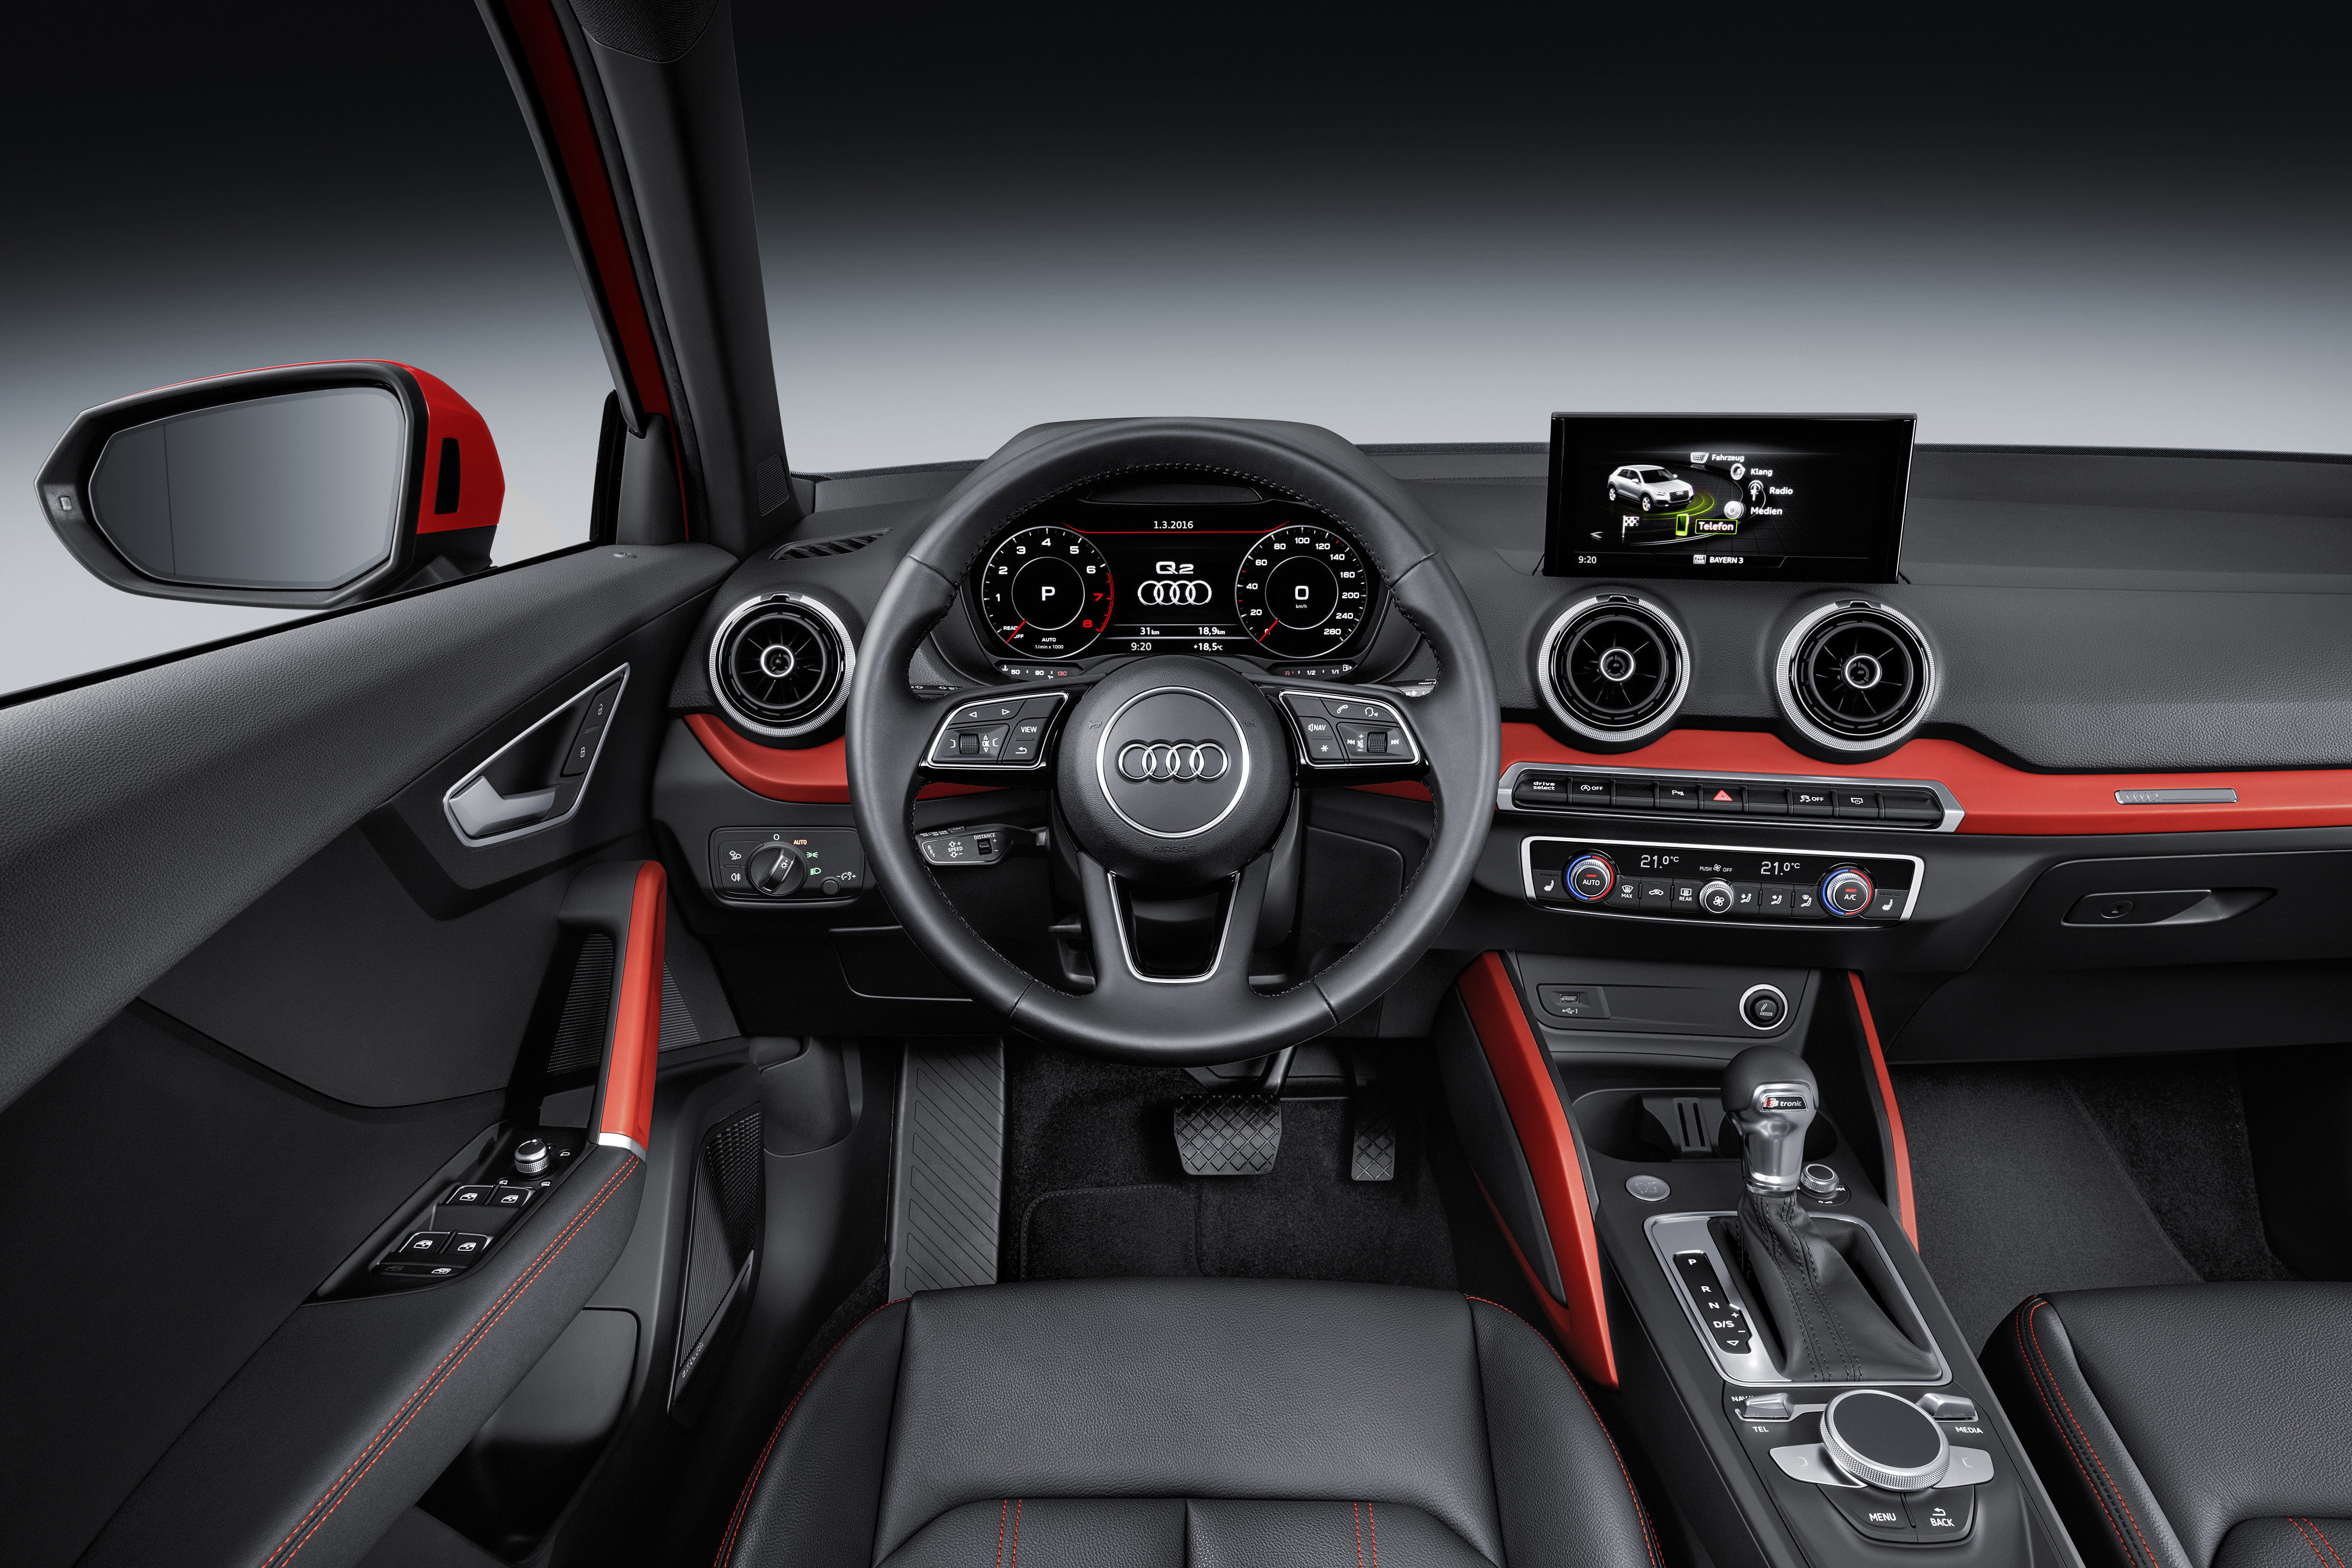 Datei:Audi Q2 Interieur.jpg – Wikipedia